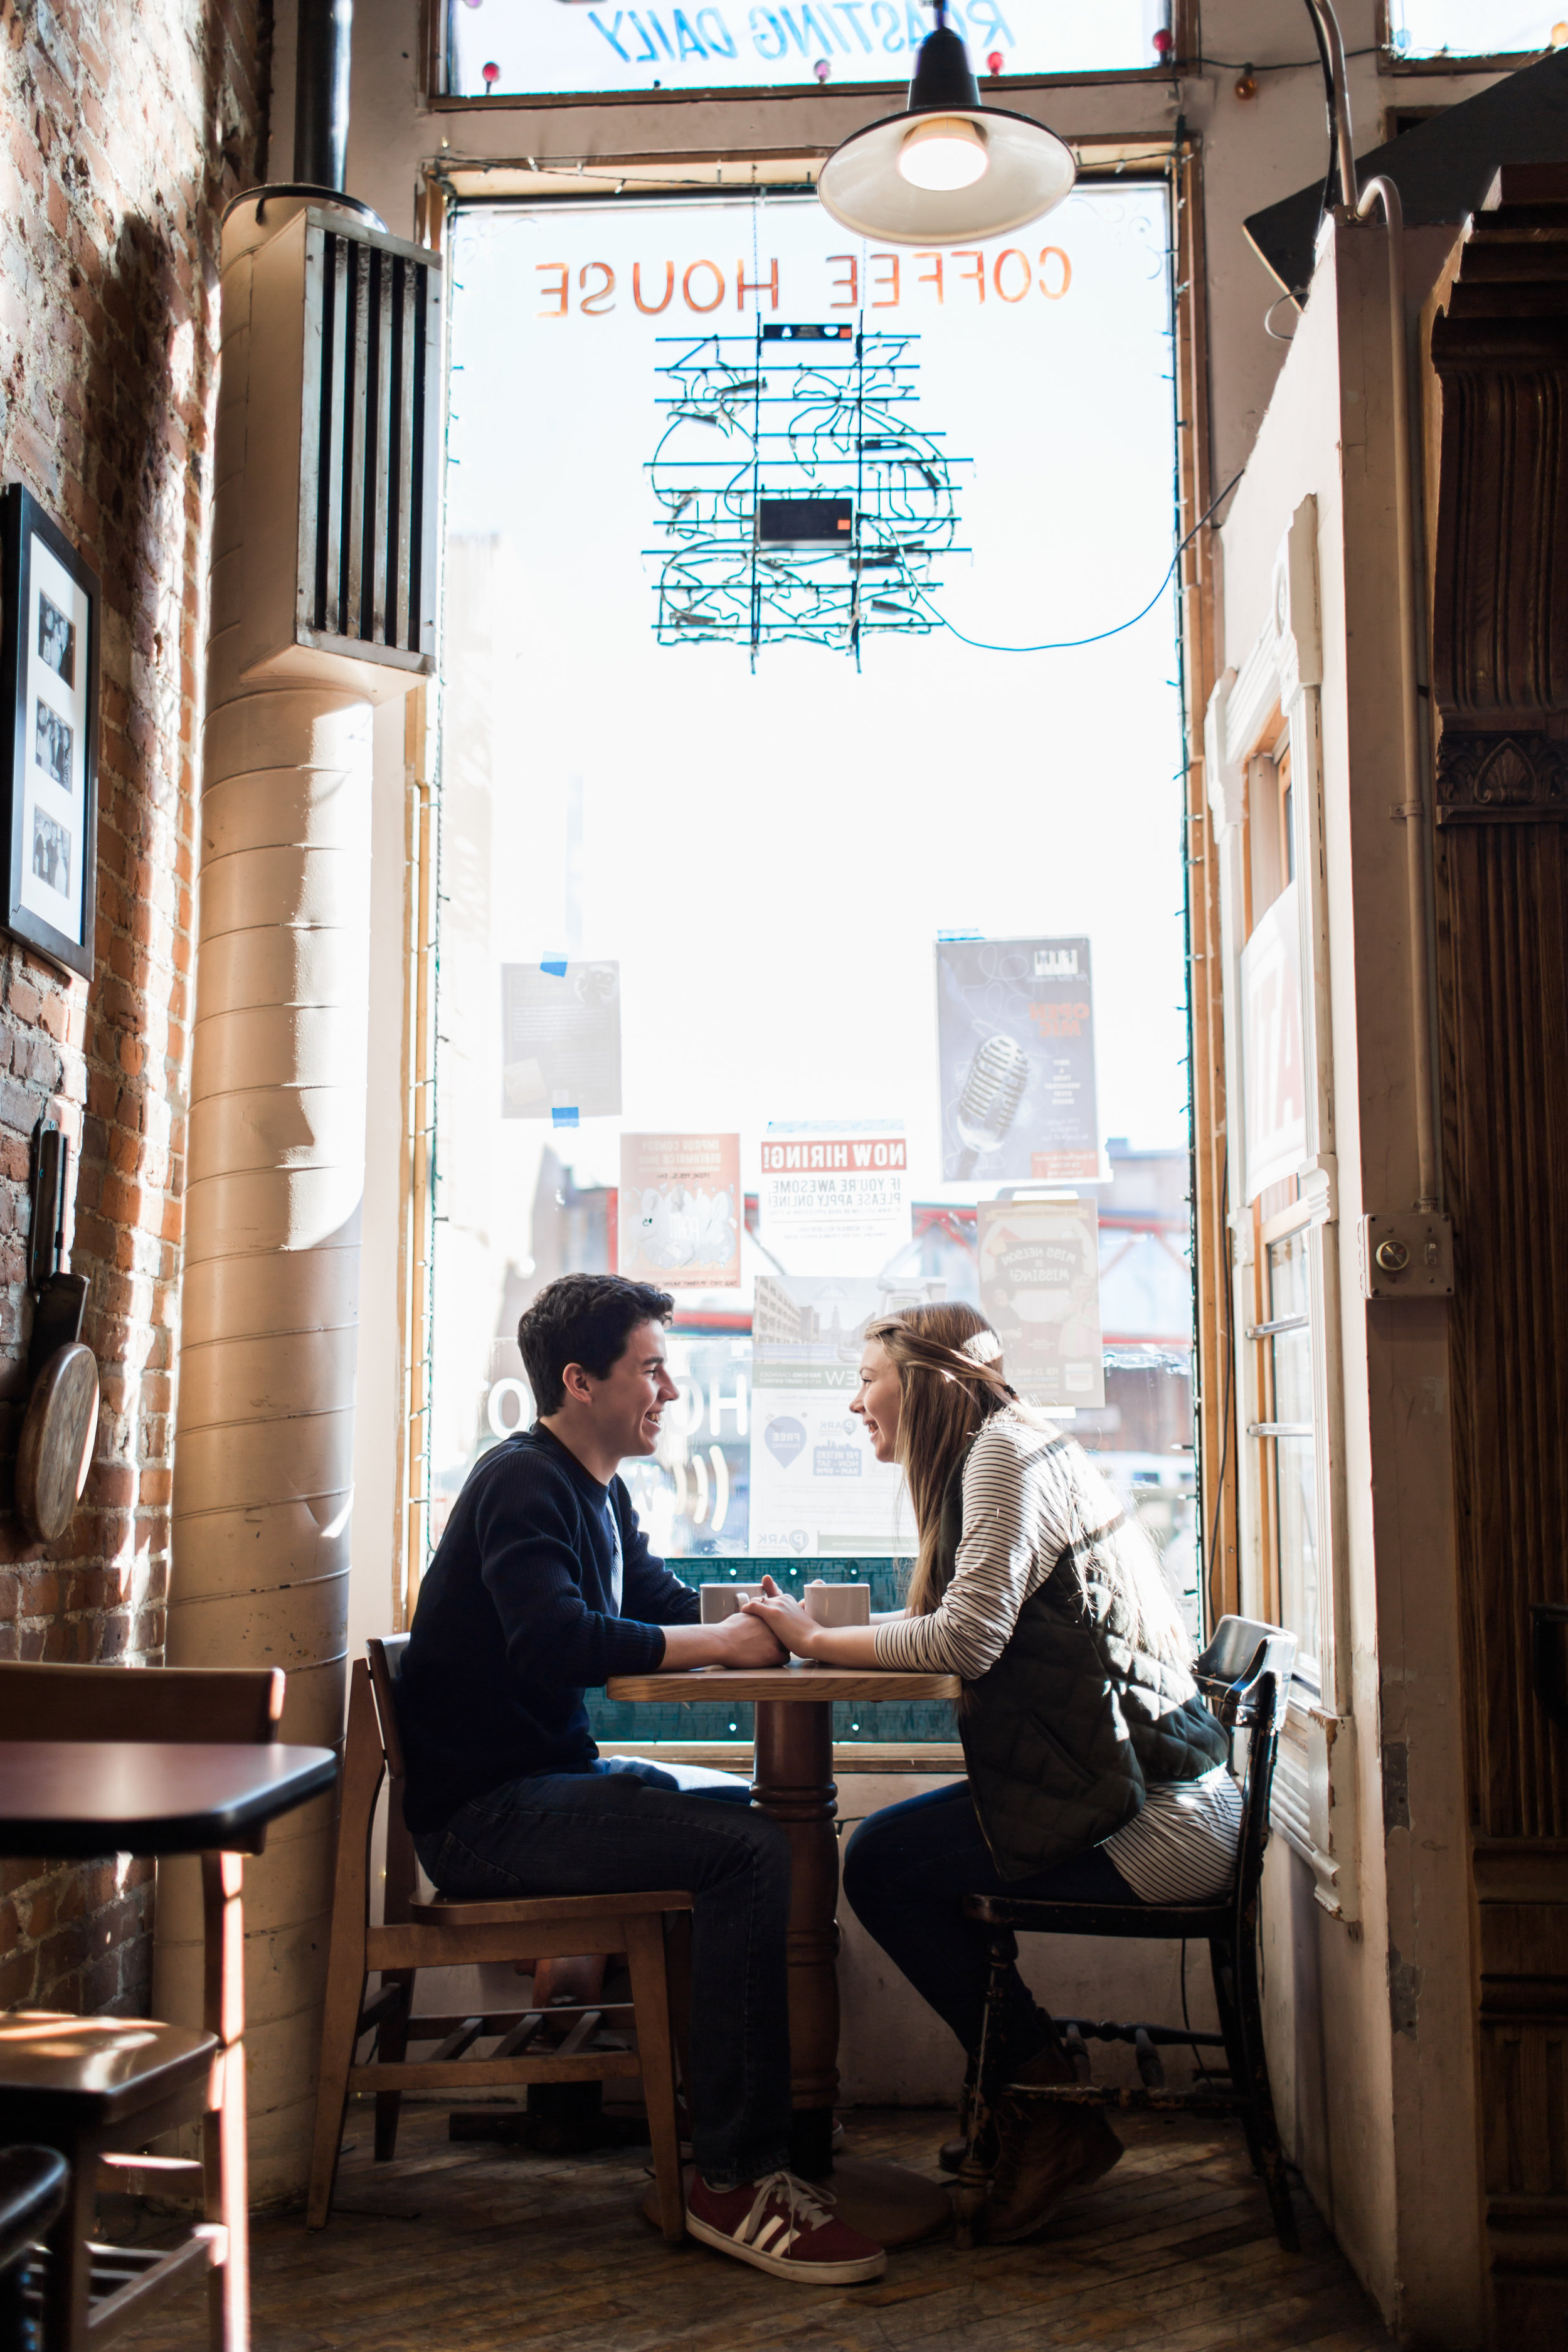 Des-Moines-coffee-shop-engagement-session-9.jpg